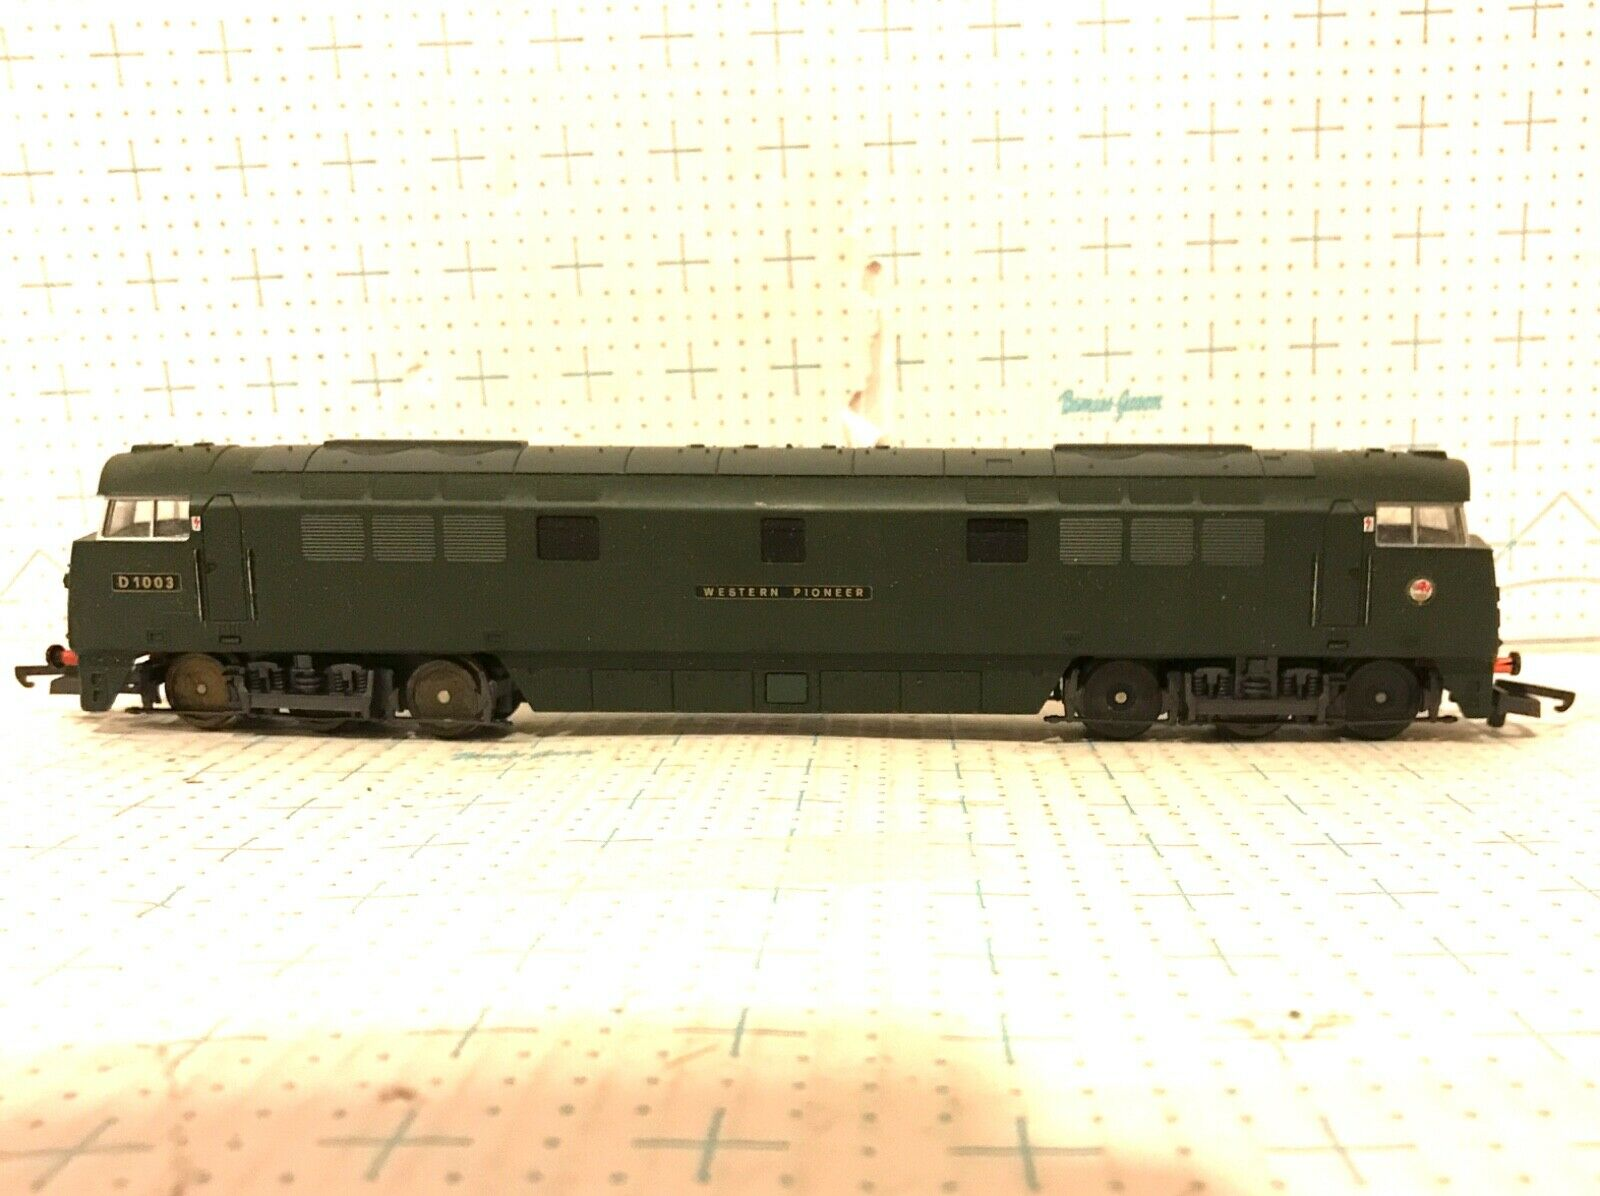 LIMA HO SCALE L205134SD03 classe 52 D1003 WESTERN PIONEER verde Coloreee NO scatola